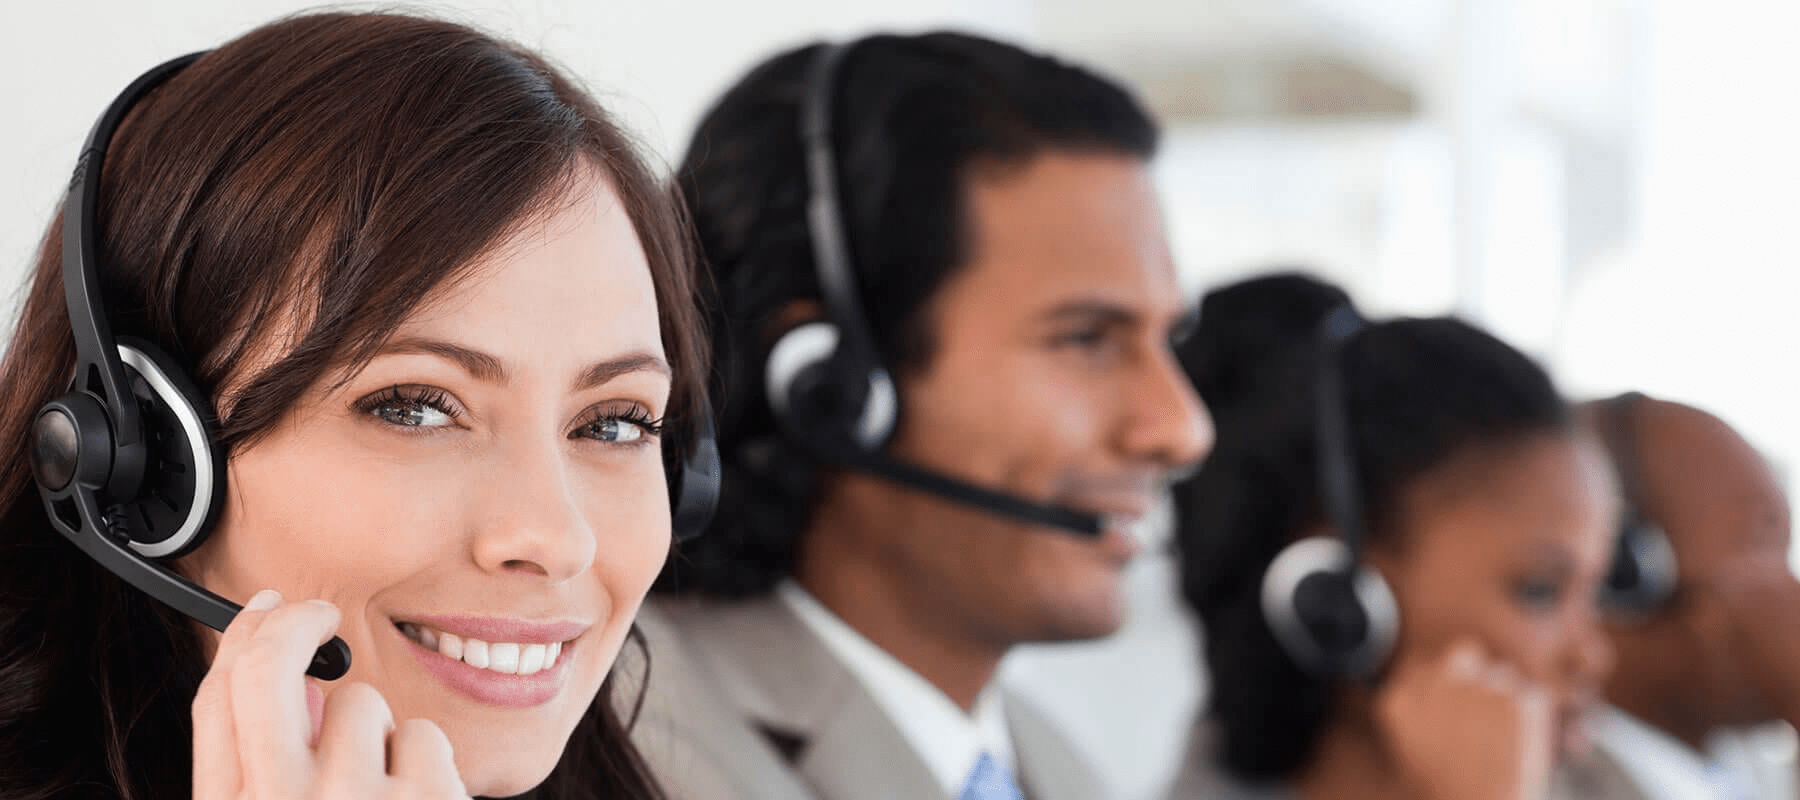 Customer service reps on headsets